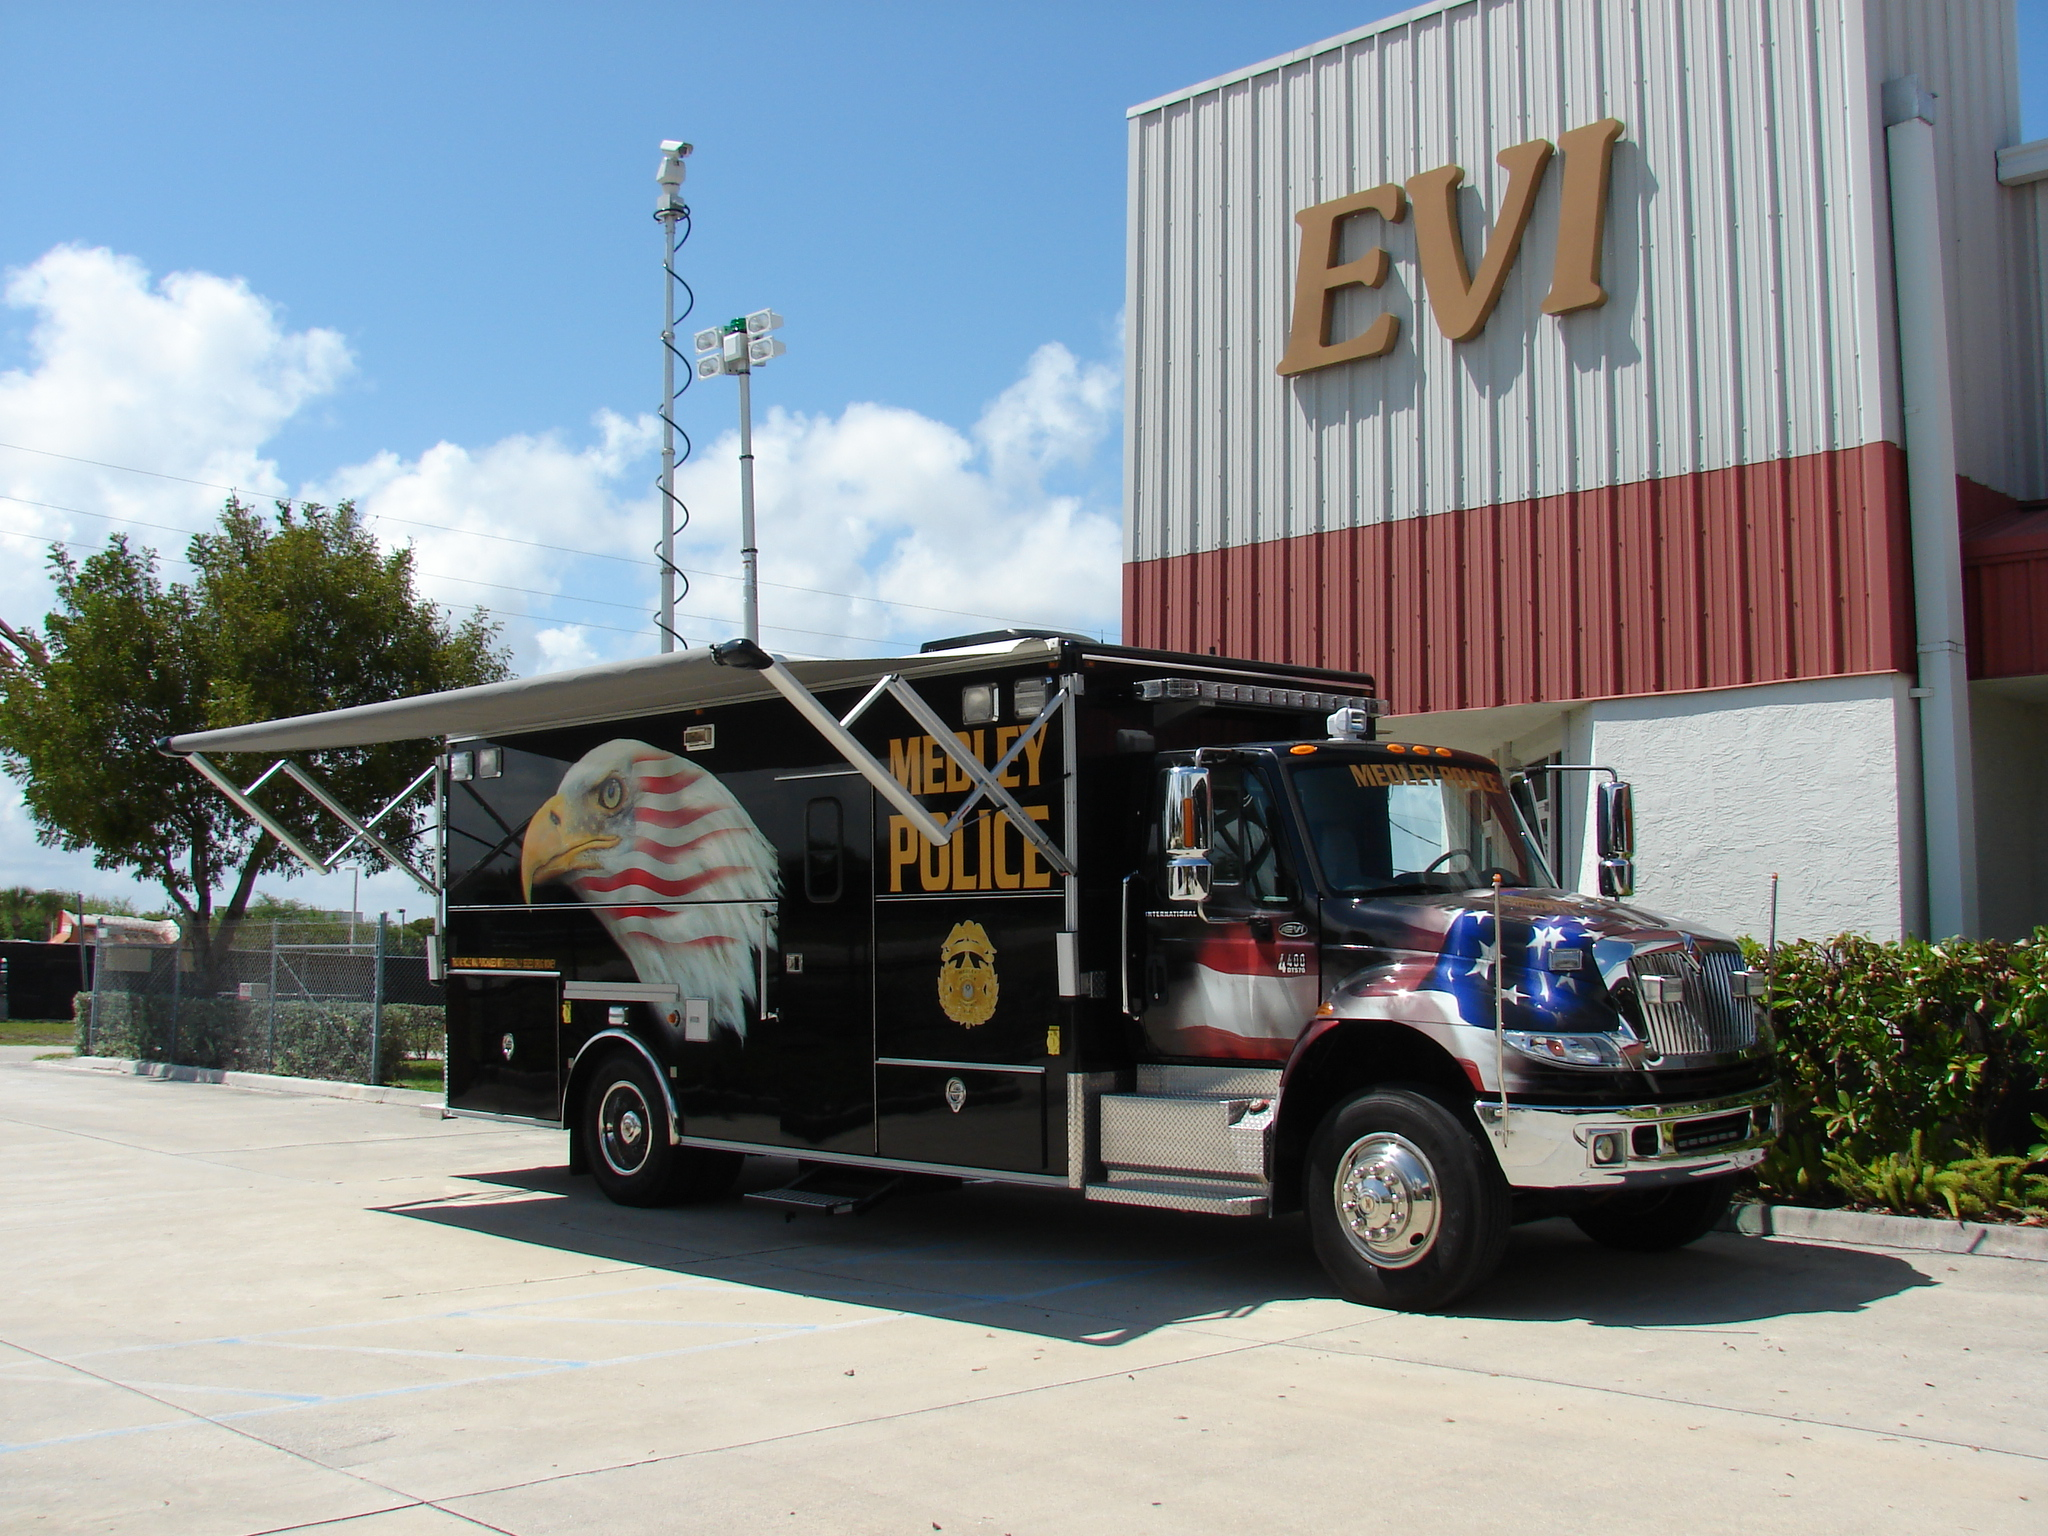 20-Ft. Law Enforcement Vehicle